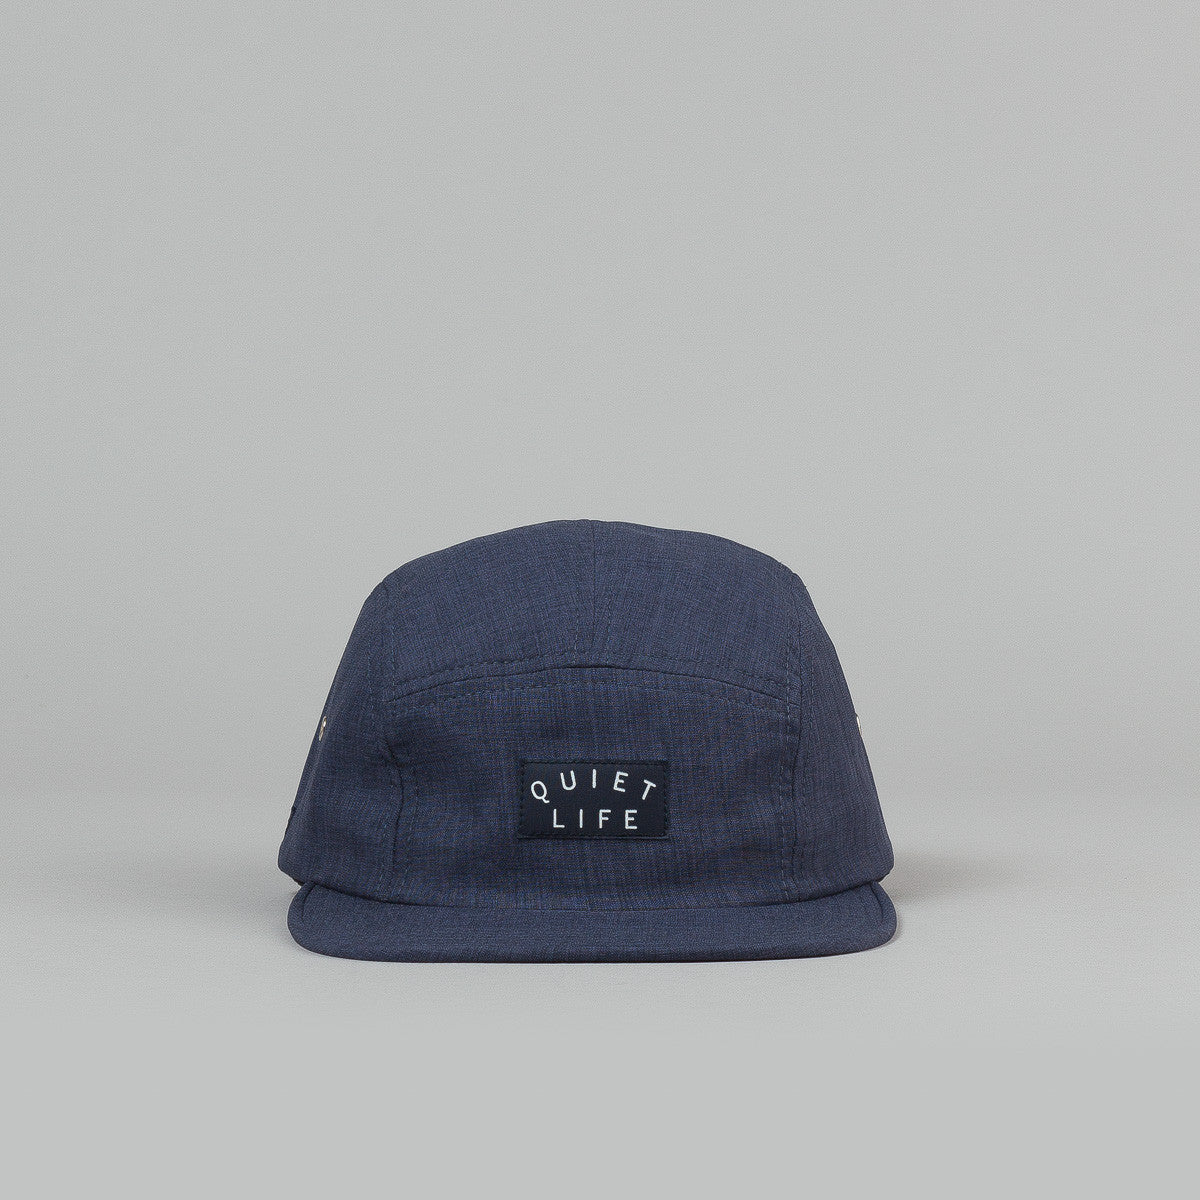 The Quiet Life Xanadu 5 Panel Cap - Navy